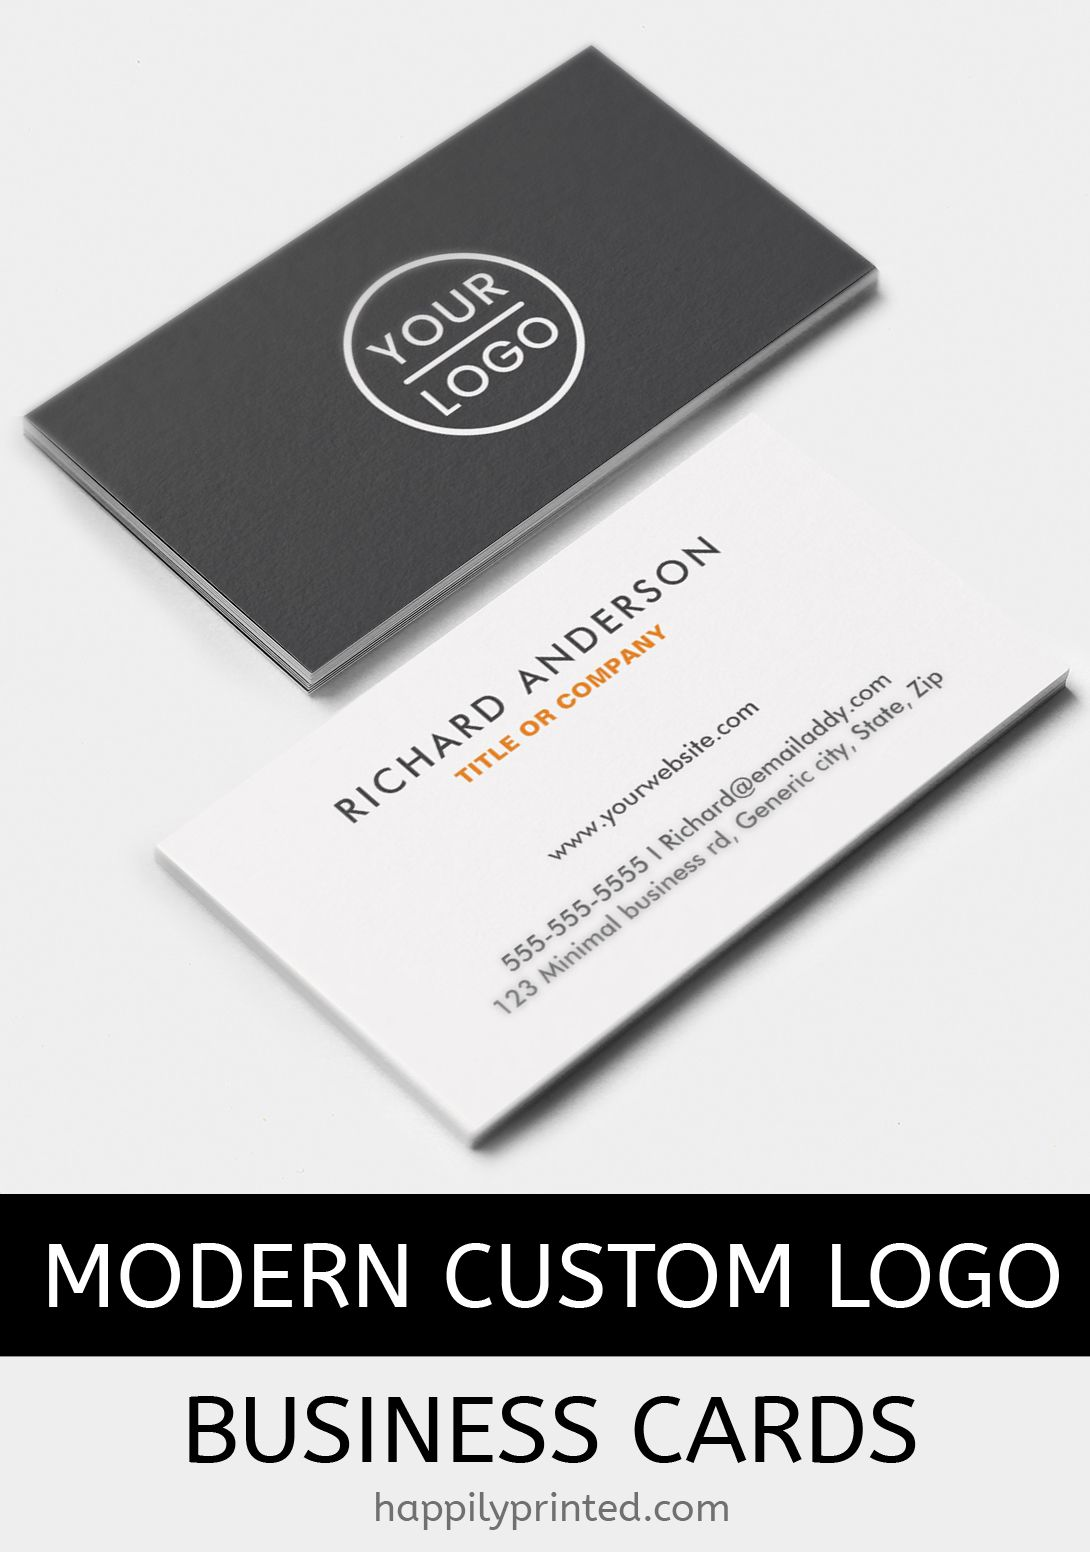 Custom logo business cards with customizable logo in the front a custom logo business cards with customizable logo in the front a white or light colored logo looks nice against the dark gray background reheart Choice Image